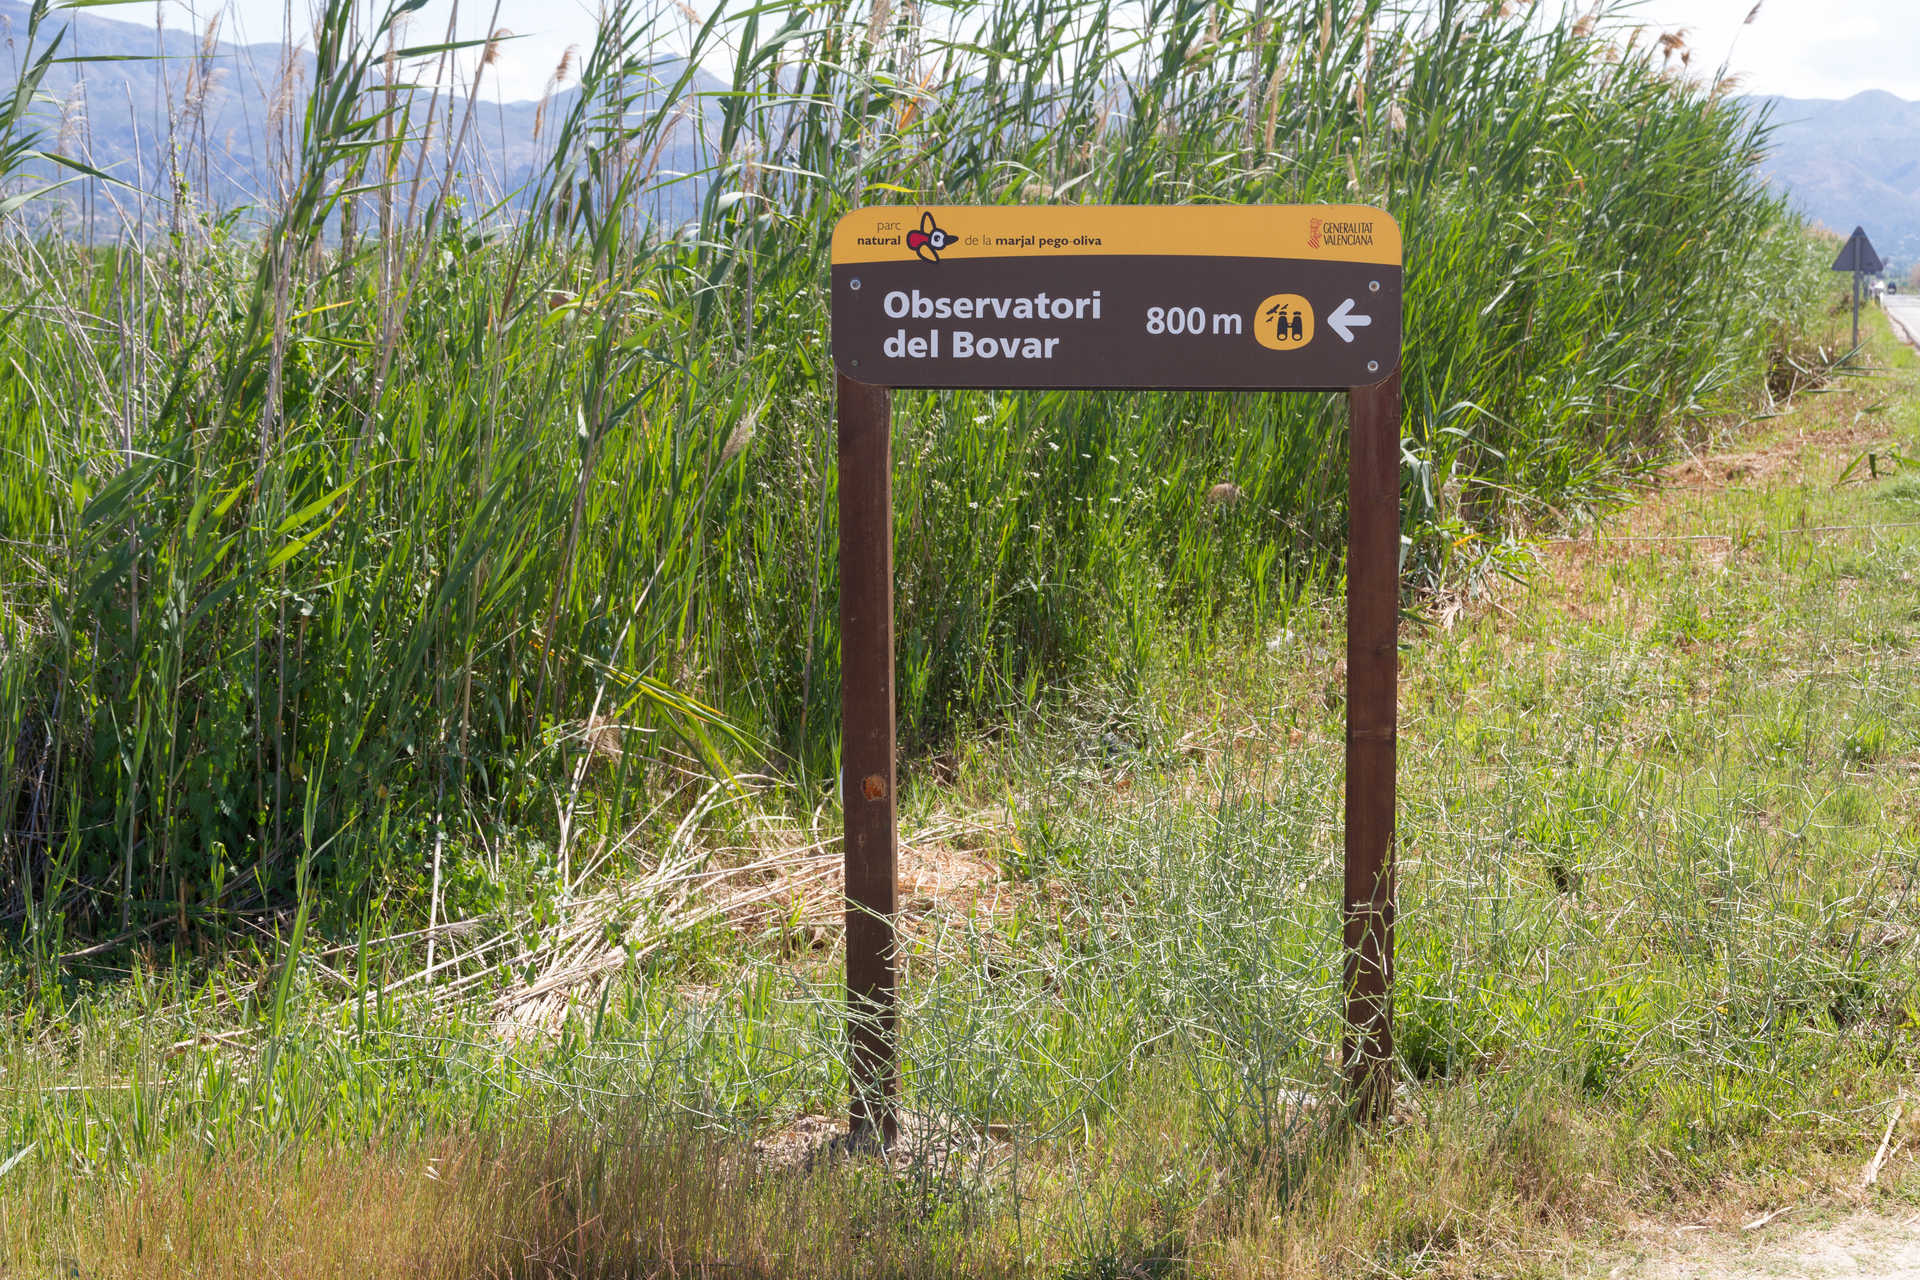 The Pego-Oliva Marshlands Nature Park